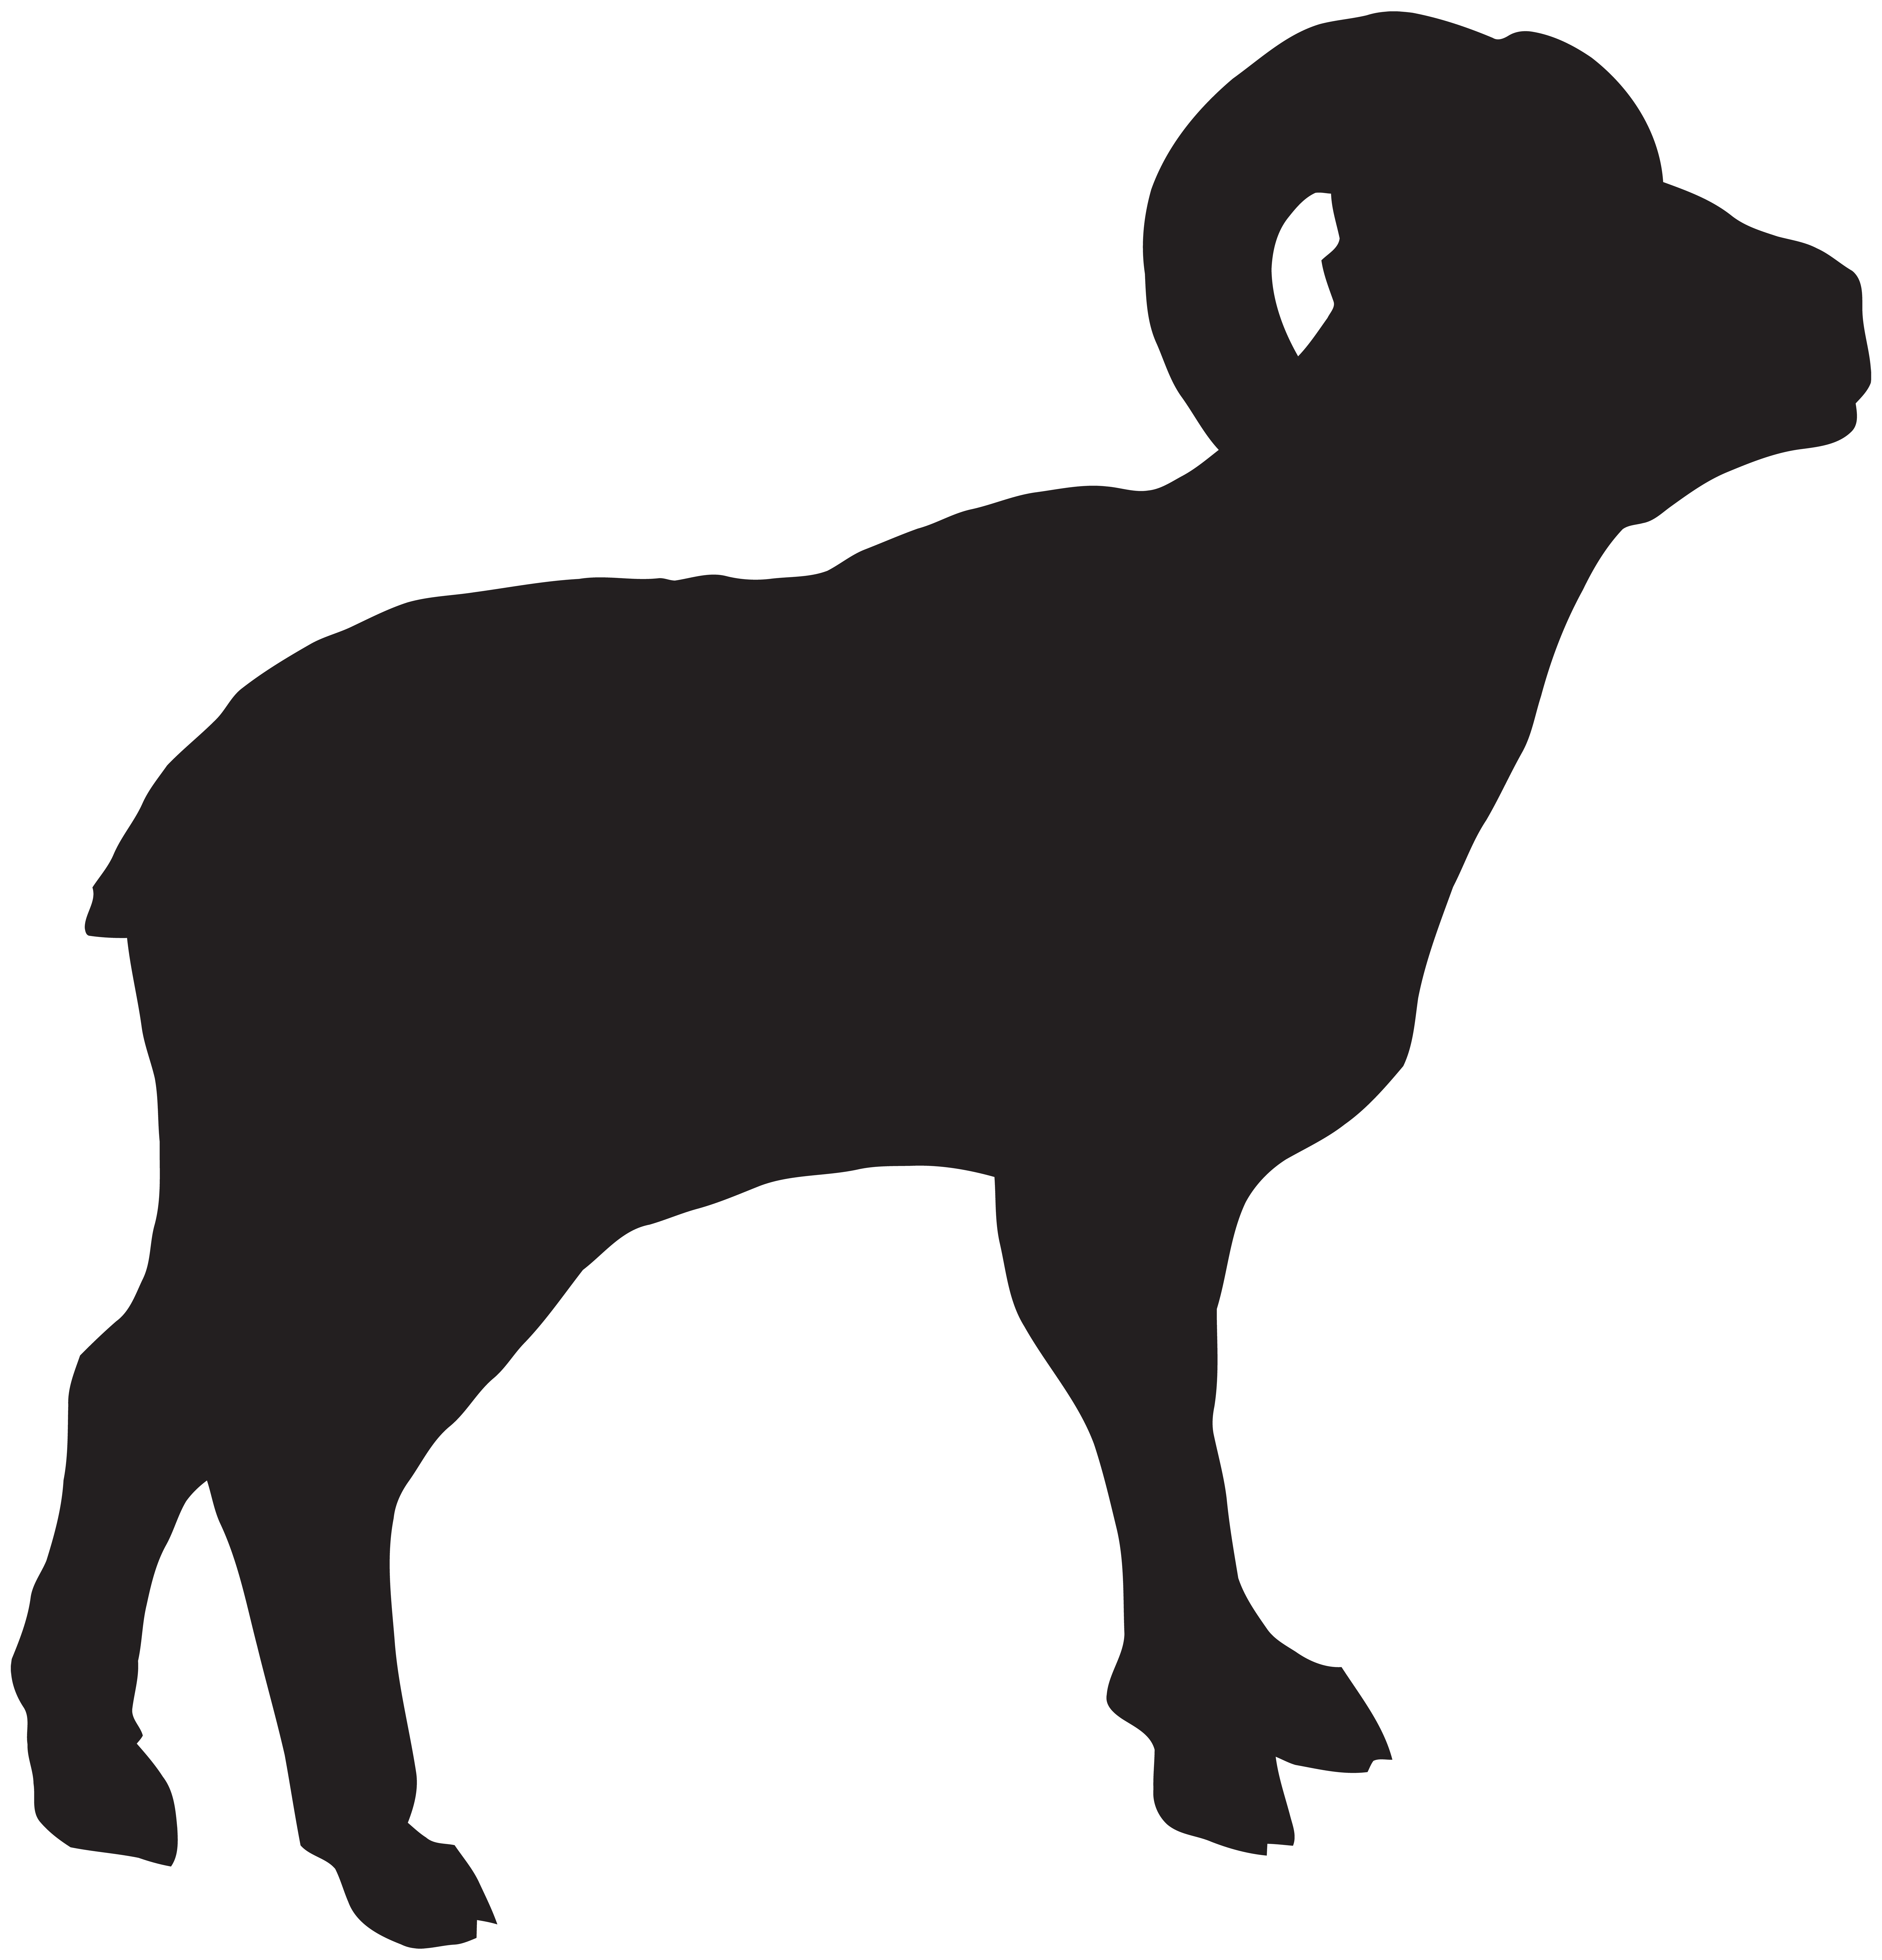 black sheep silhouette at getdrawings com free for personal use rh getdrawings com black and white sheep clipart free baa baa black sheep clipart